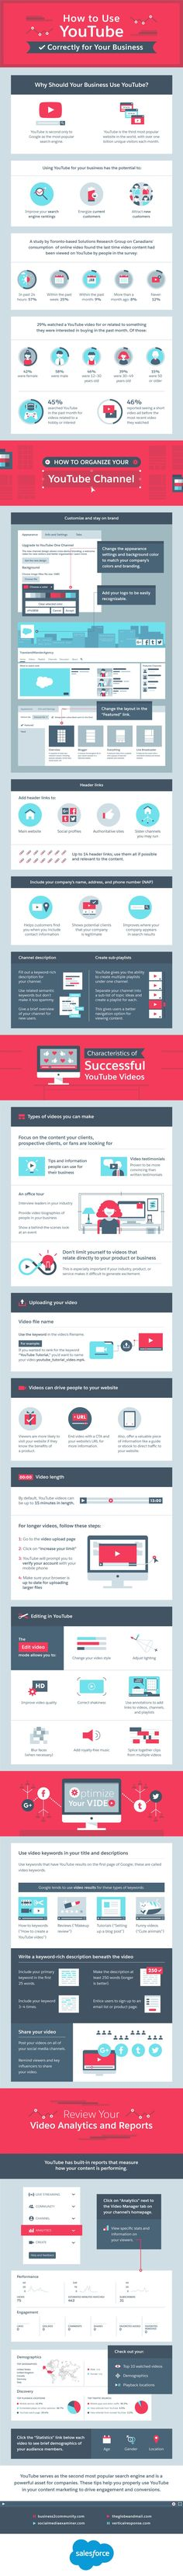 How to Use YouTube Correctly for Your Business [Infographic] | Social Media Today